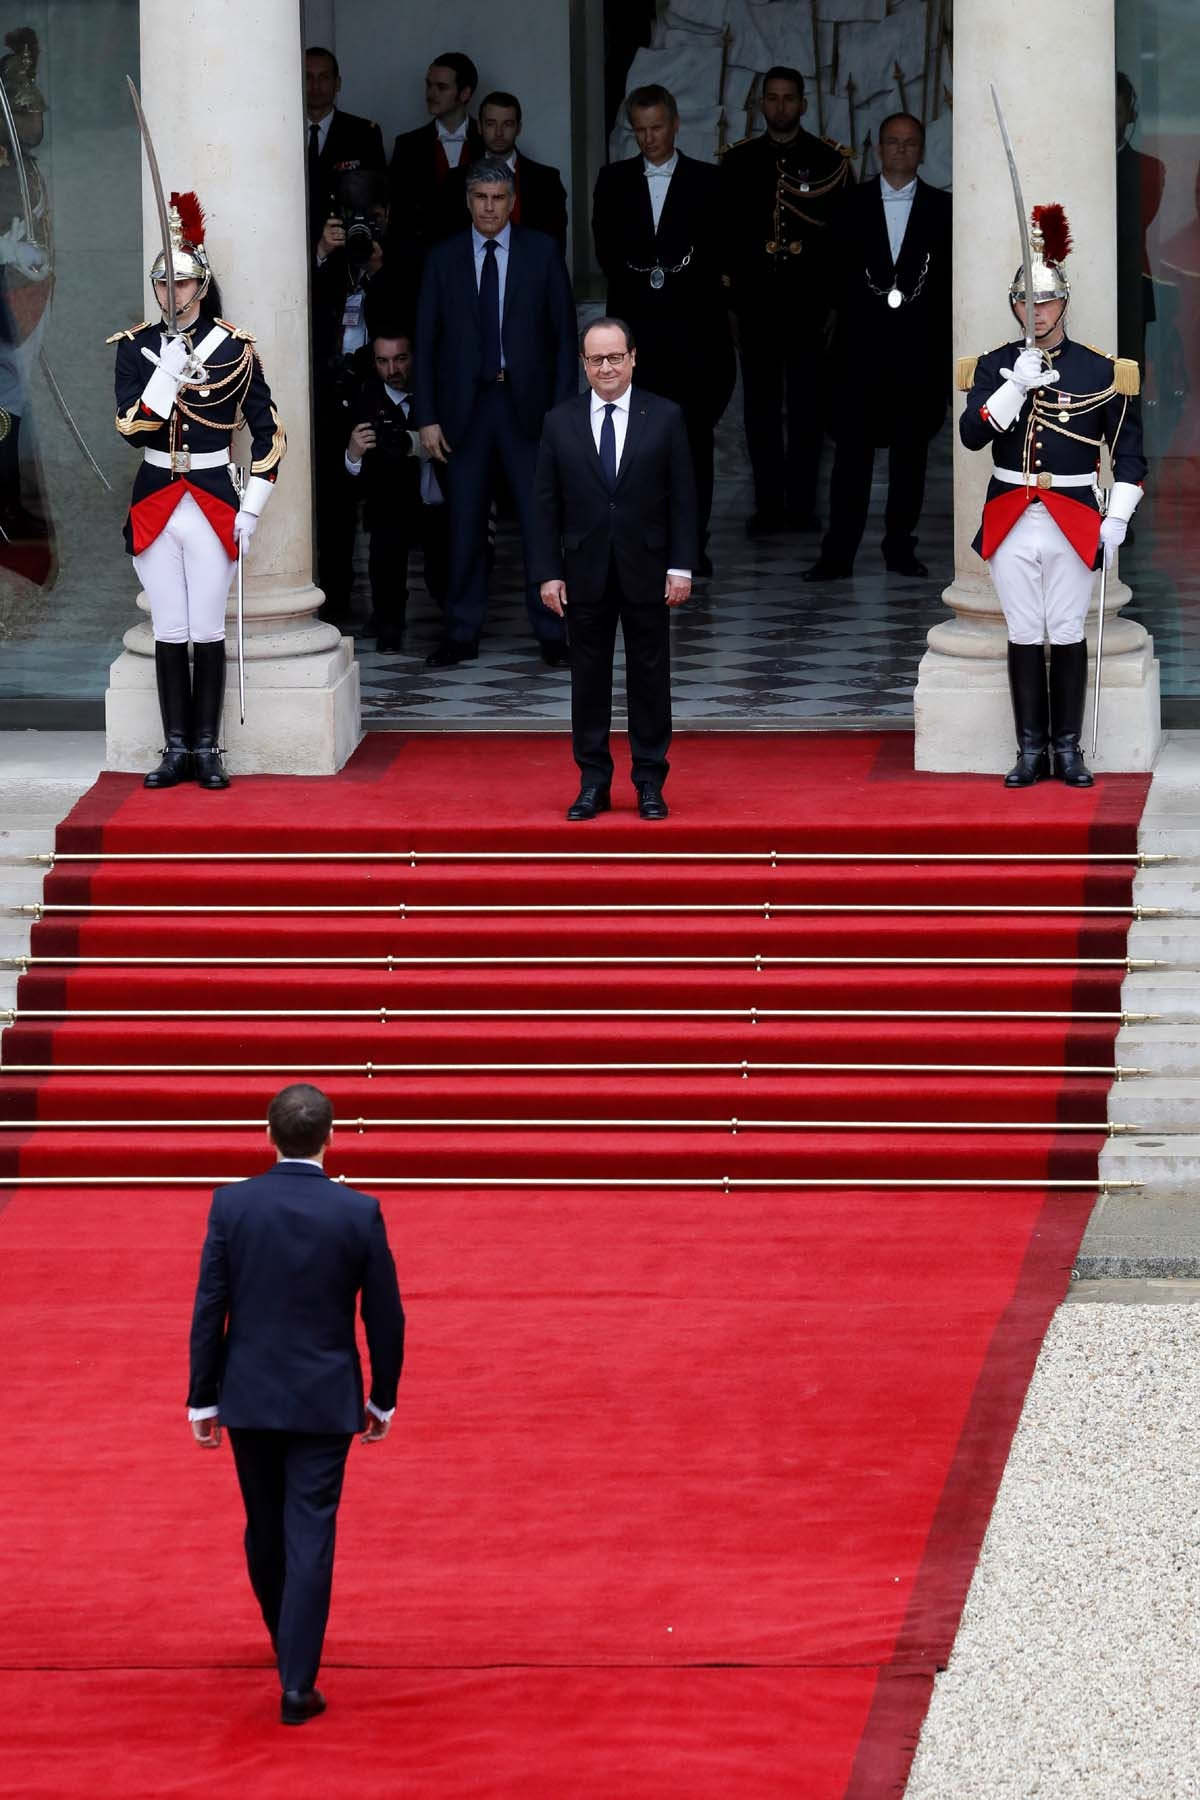 French newly elected President Emmanuel Macron is welcomed by his predecessor Francois Hollande (top C) as he arrives at the Elysee presidential Palace for the handover and inauguration ceremonies on May 14, 2017 in Paris.